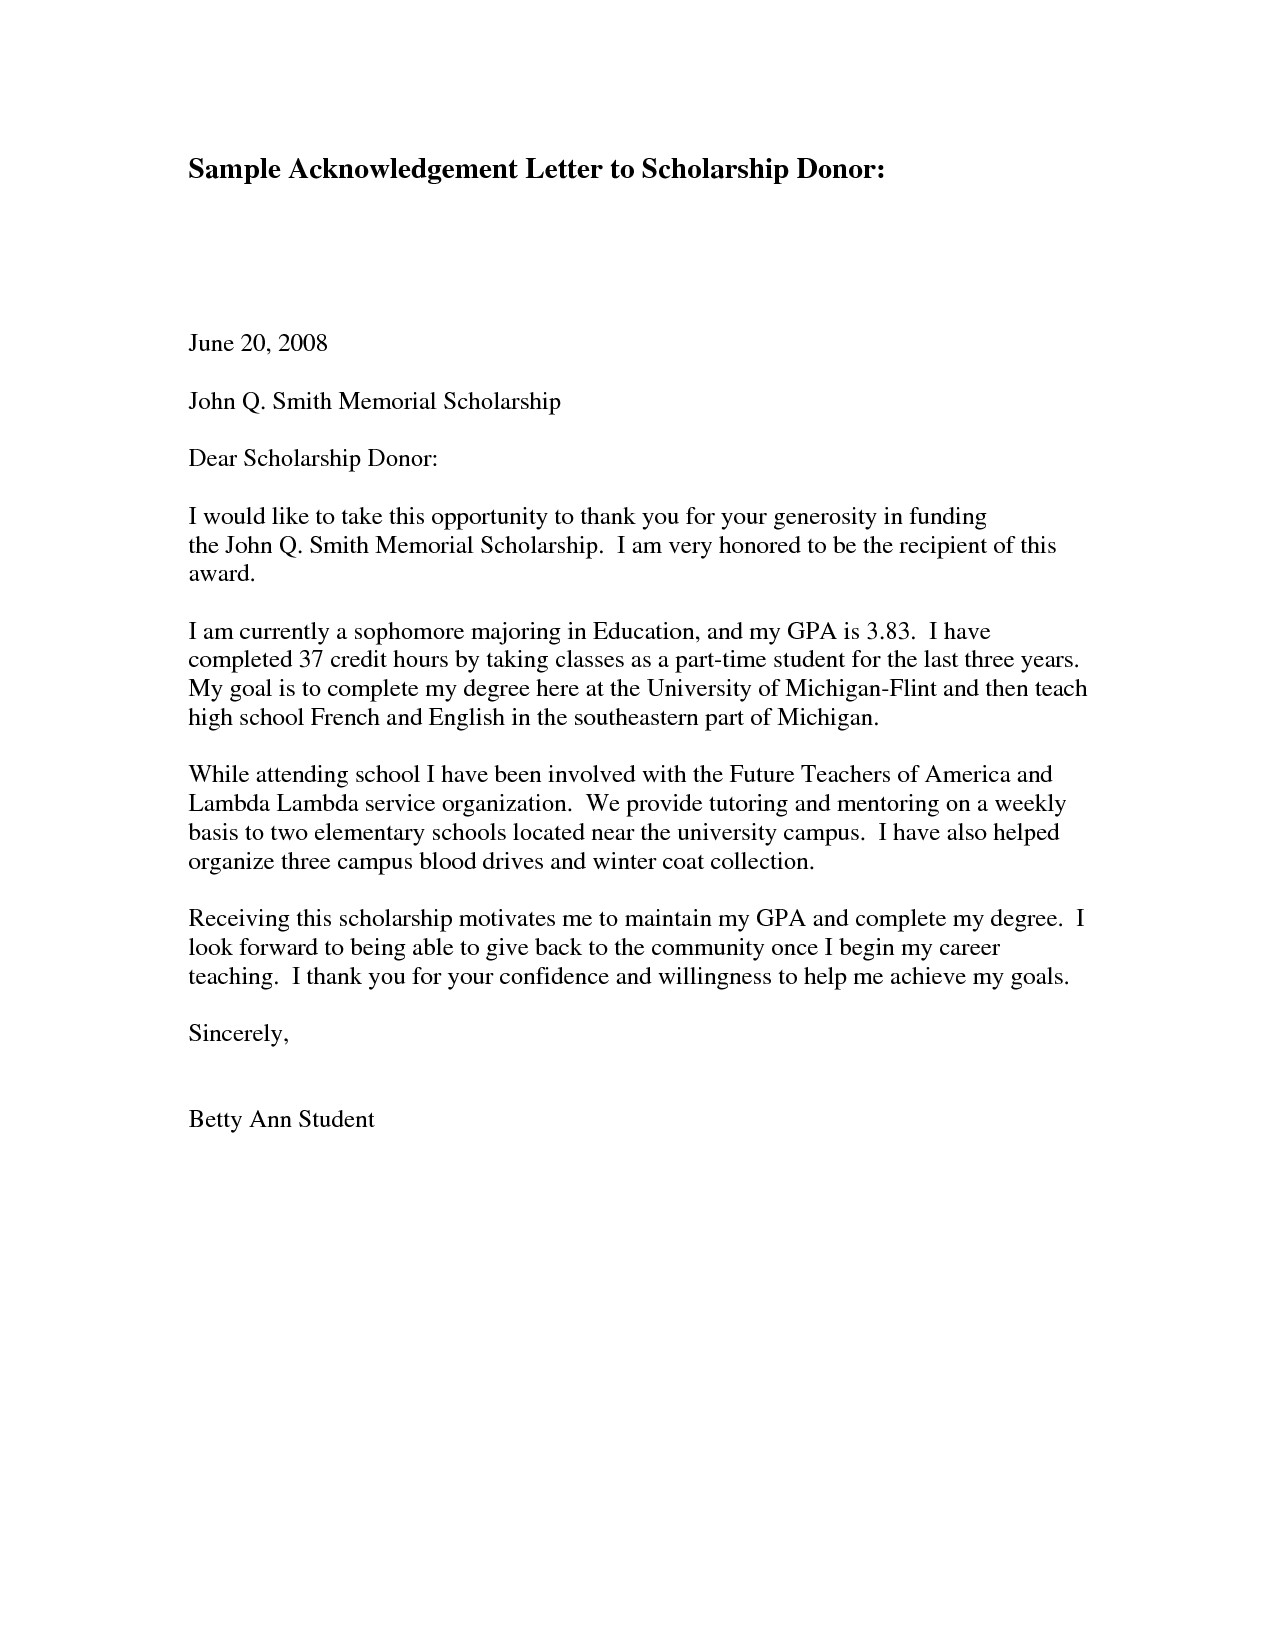 Charitable Donation Letter Template - Scholarship Thank You Letter Sample Http Jobsearch About Od